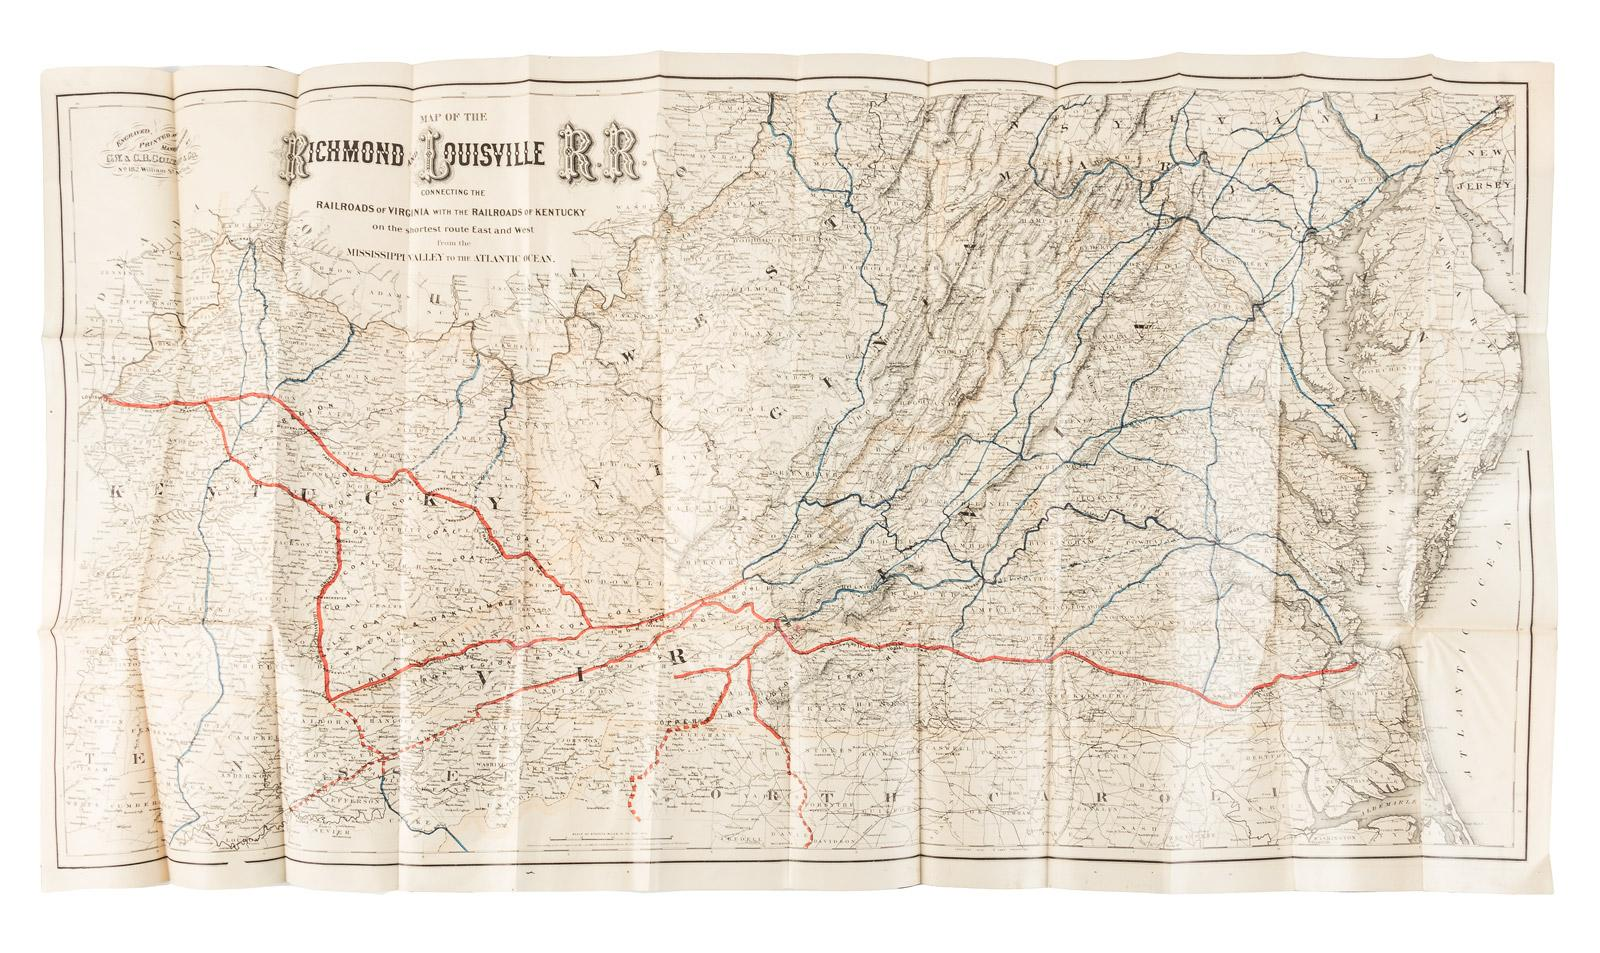 Map of the Richmond and Louisville R.R. Connecting the Railroads of Eastern Kentucky Railroad Map on illinois railroad, montana railroad, florida railroad, texas railroad, cincinnati railroad, maine railroad, utah railroad, louisville railroad, ek railroad, houston railroad, california railroad, hawaii railroad, wisconsin railroad, kansas railroad,